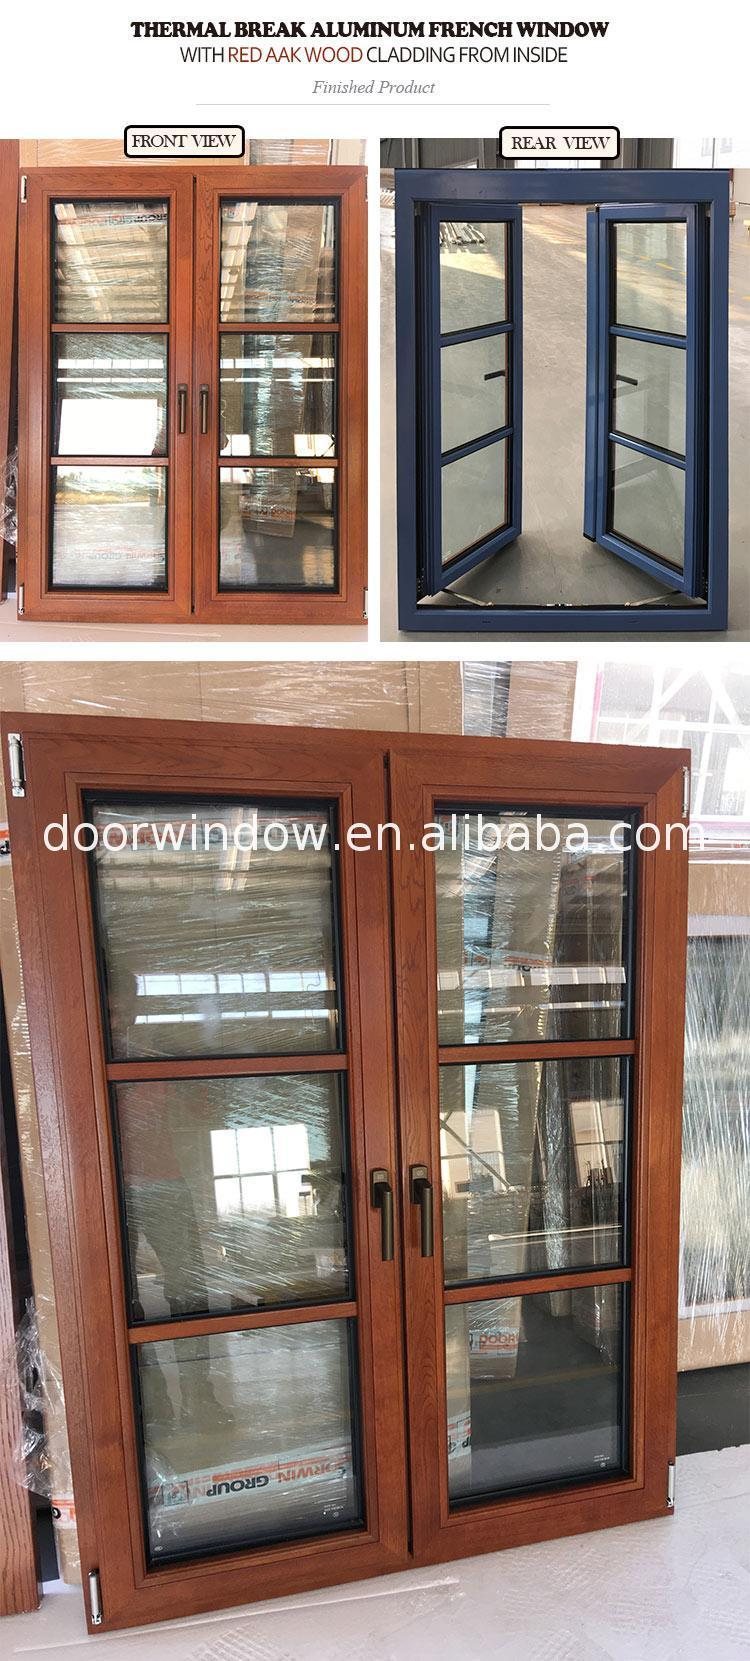 High quality french window size shutters security bars